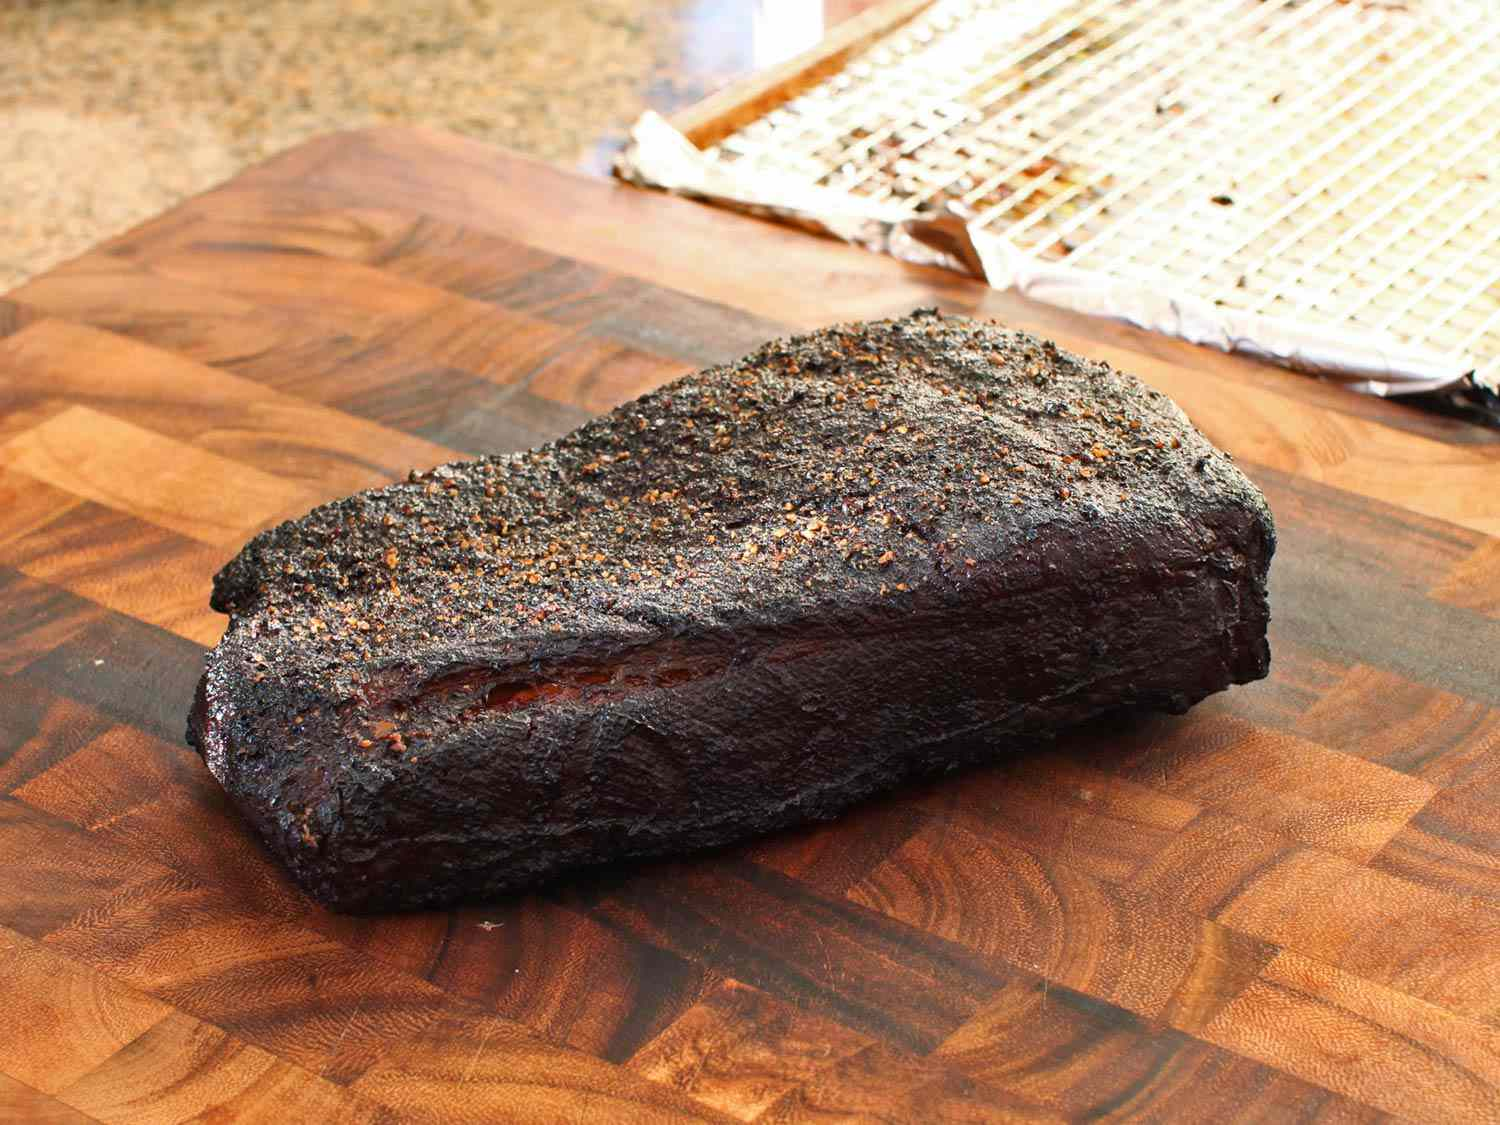 Finished brisket that's been cooked sous vide and then smoked, with a blackened bark